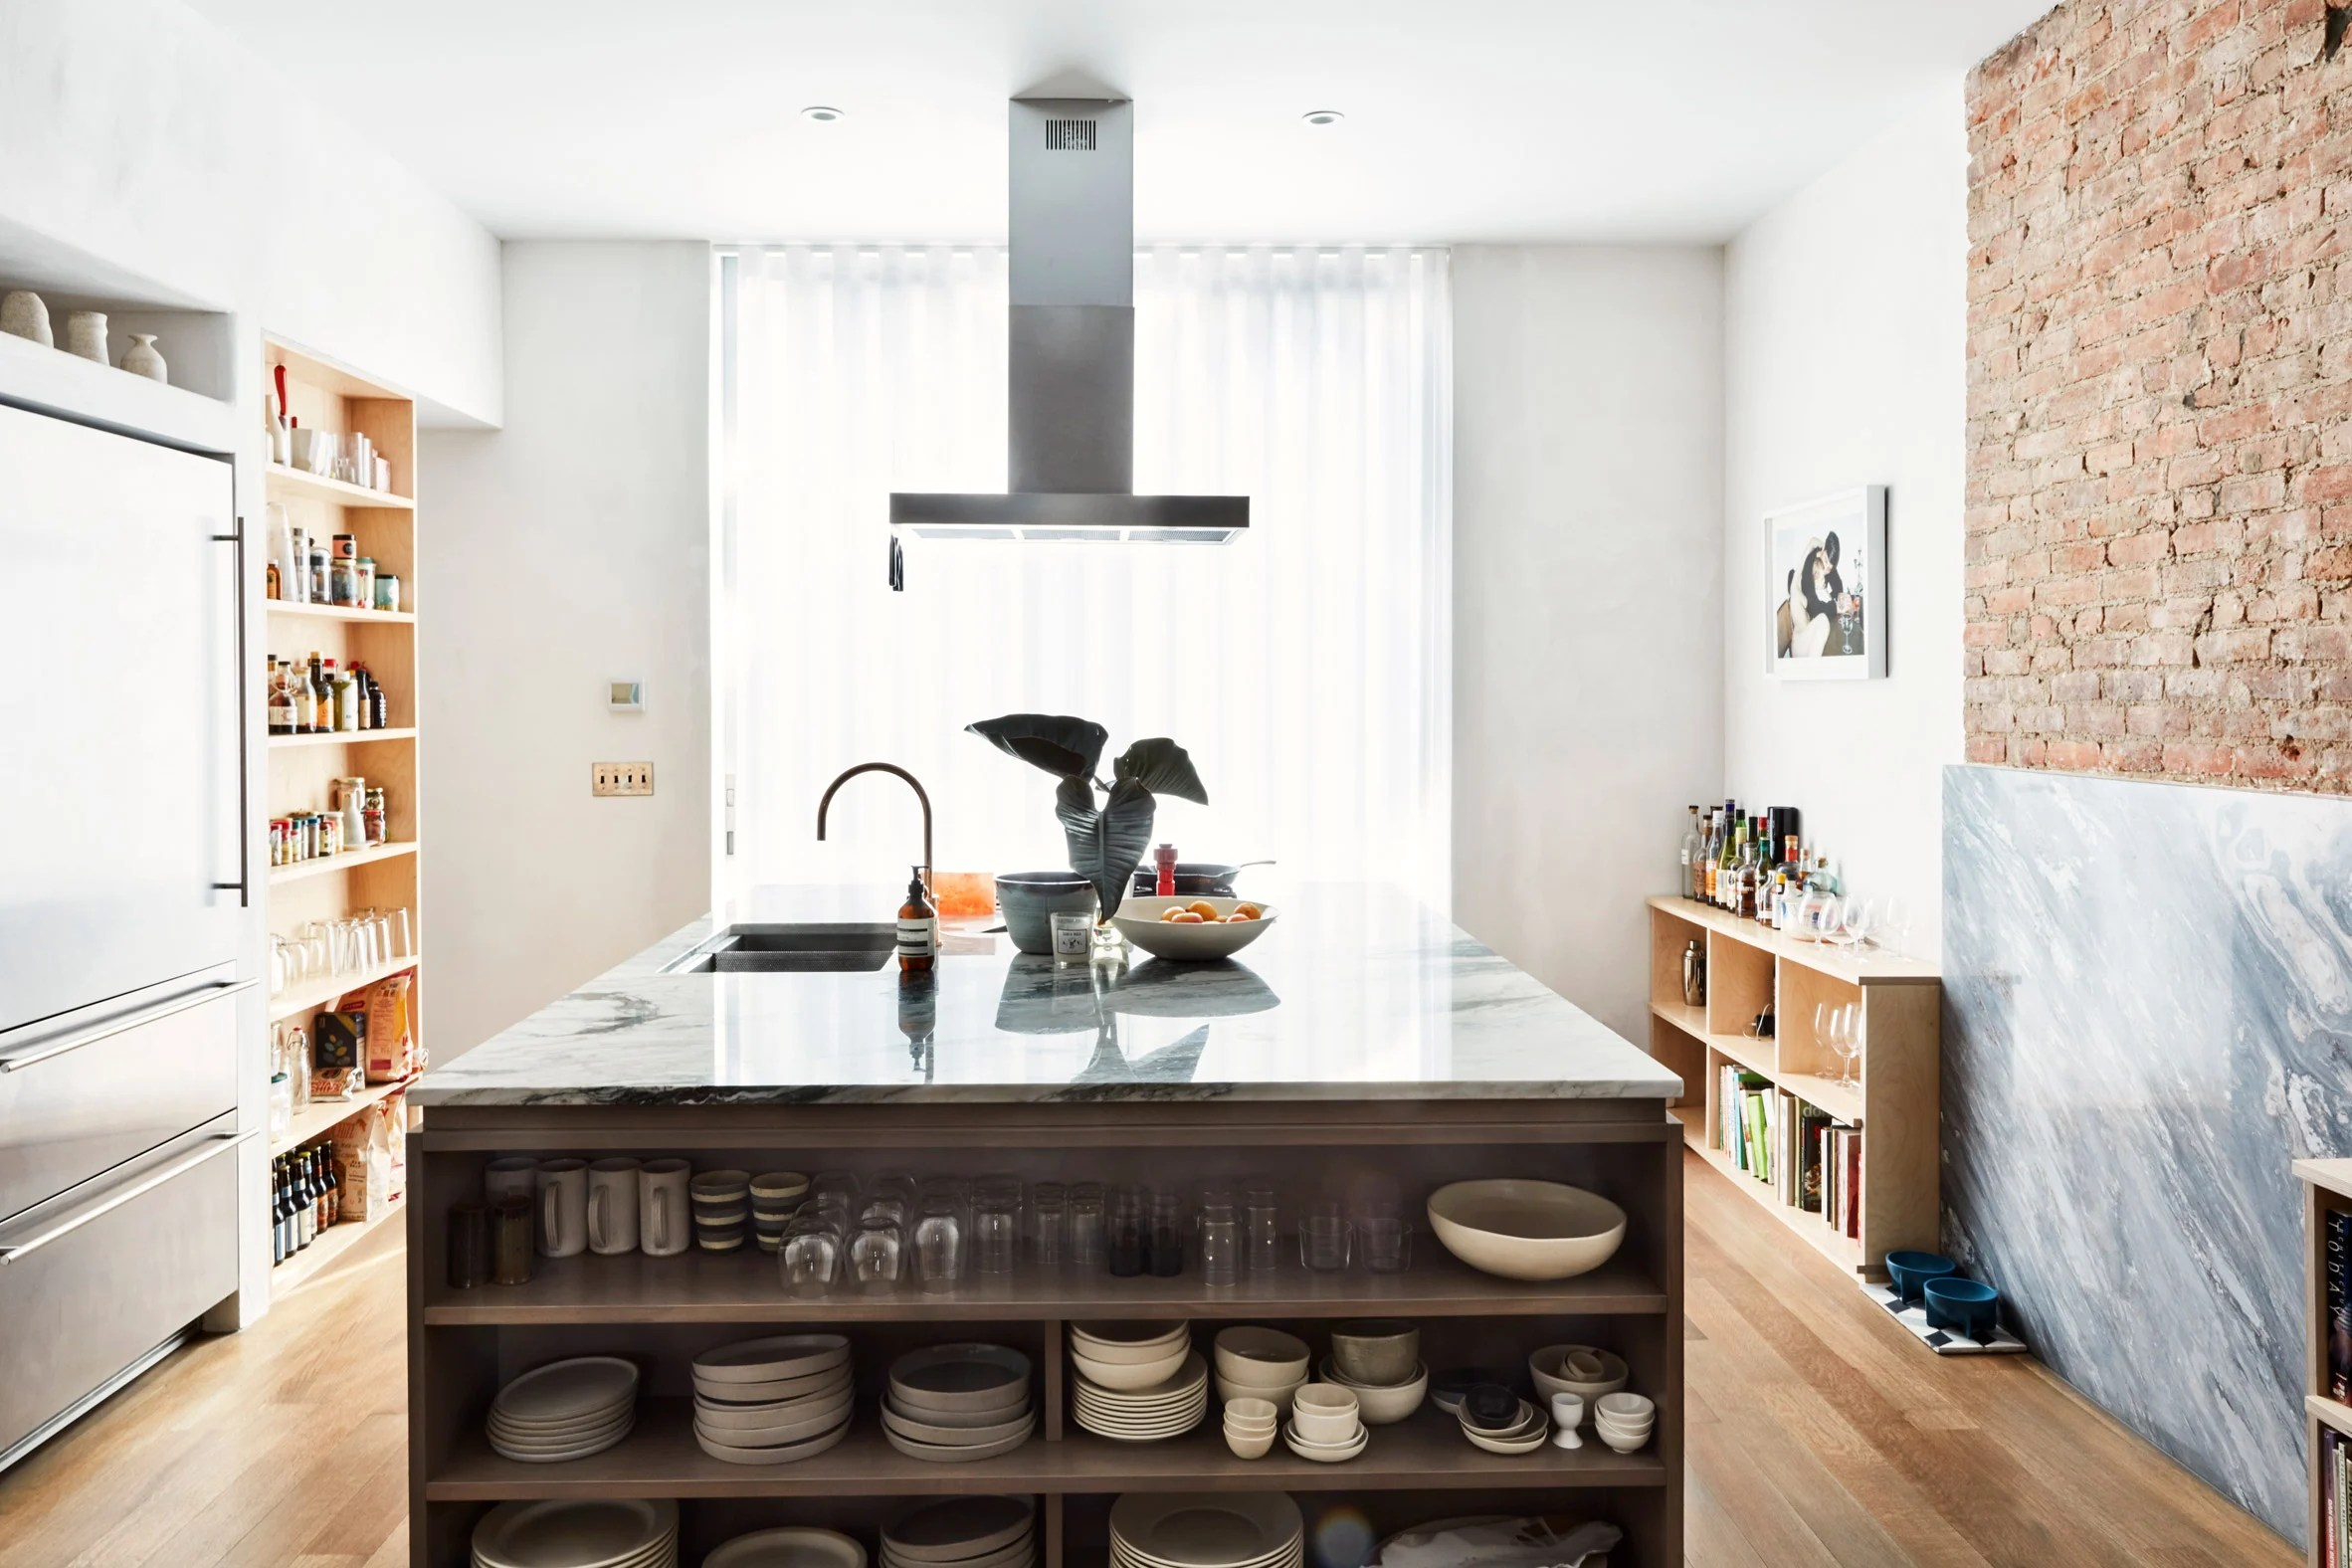 Bedford-Stuyvesant Brownstone by Keith Burns Architect